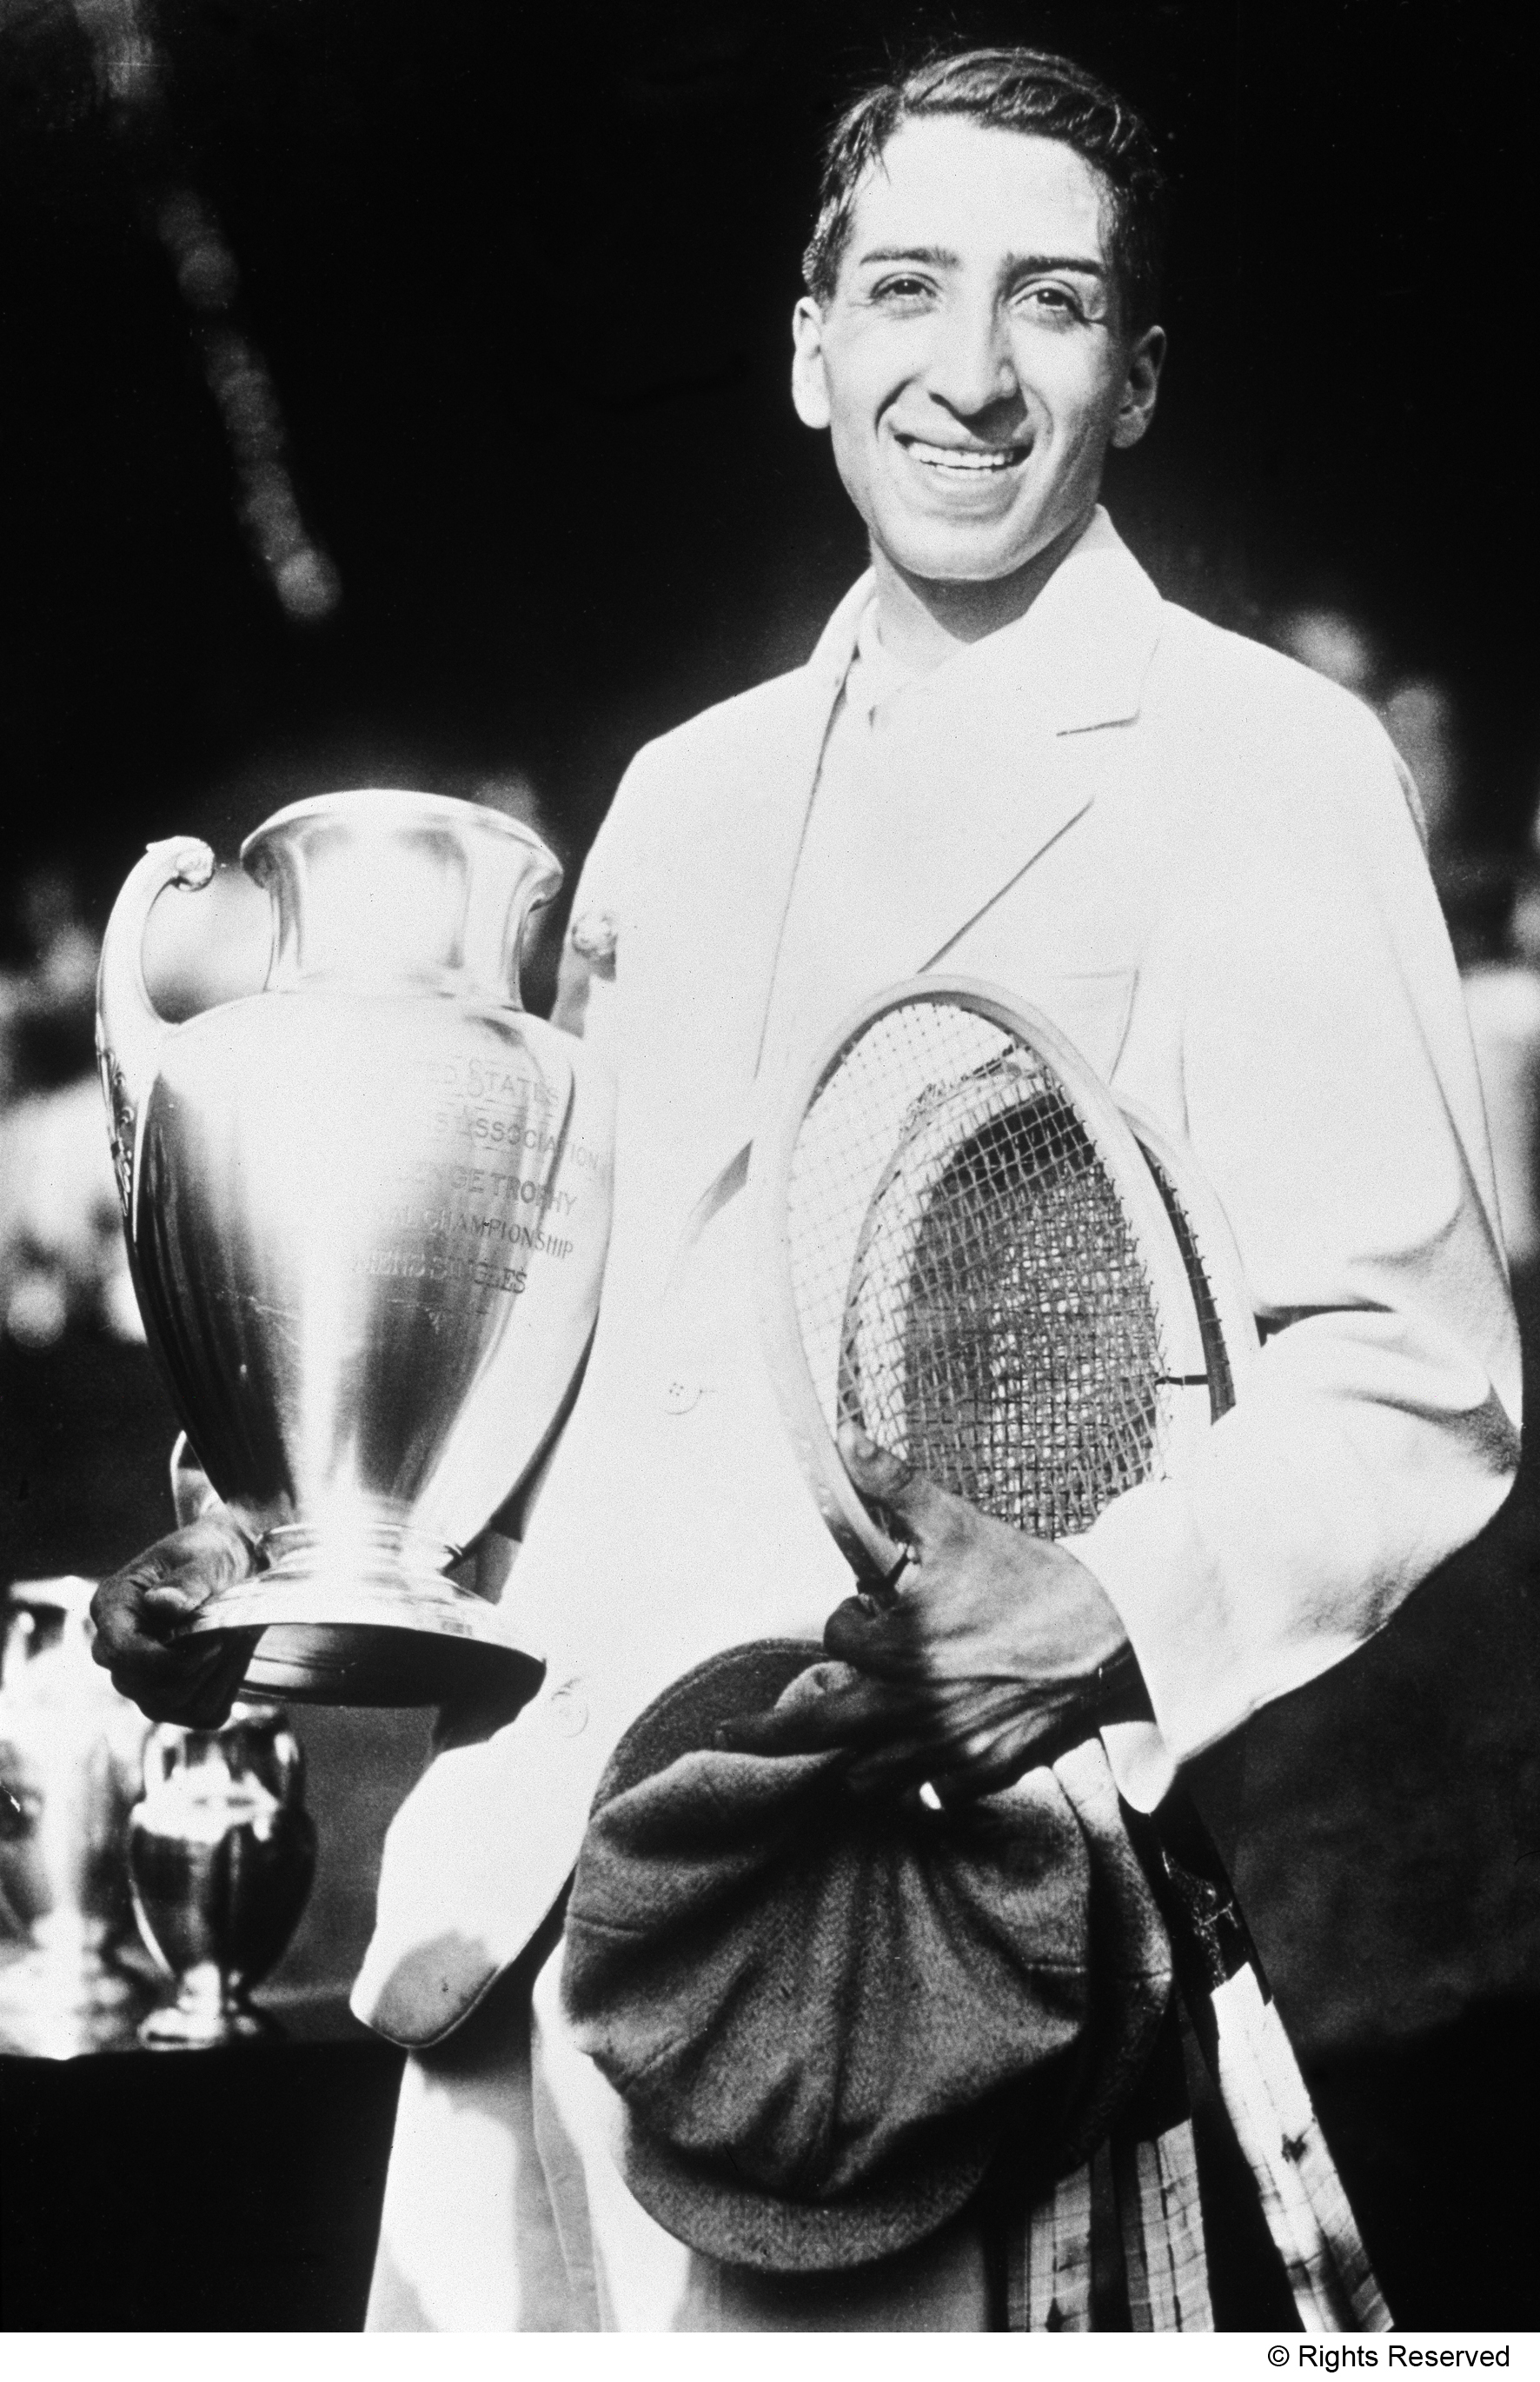 Rene Lacoste s GS Performance Timeline & Stats